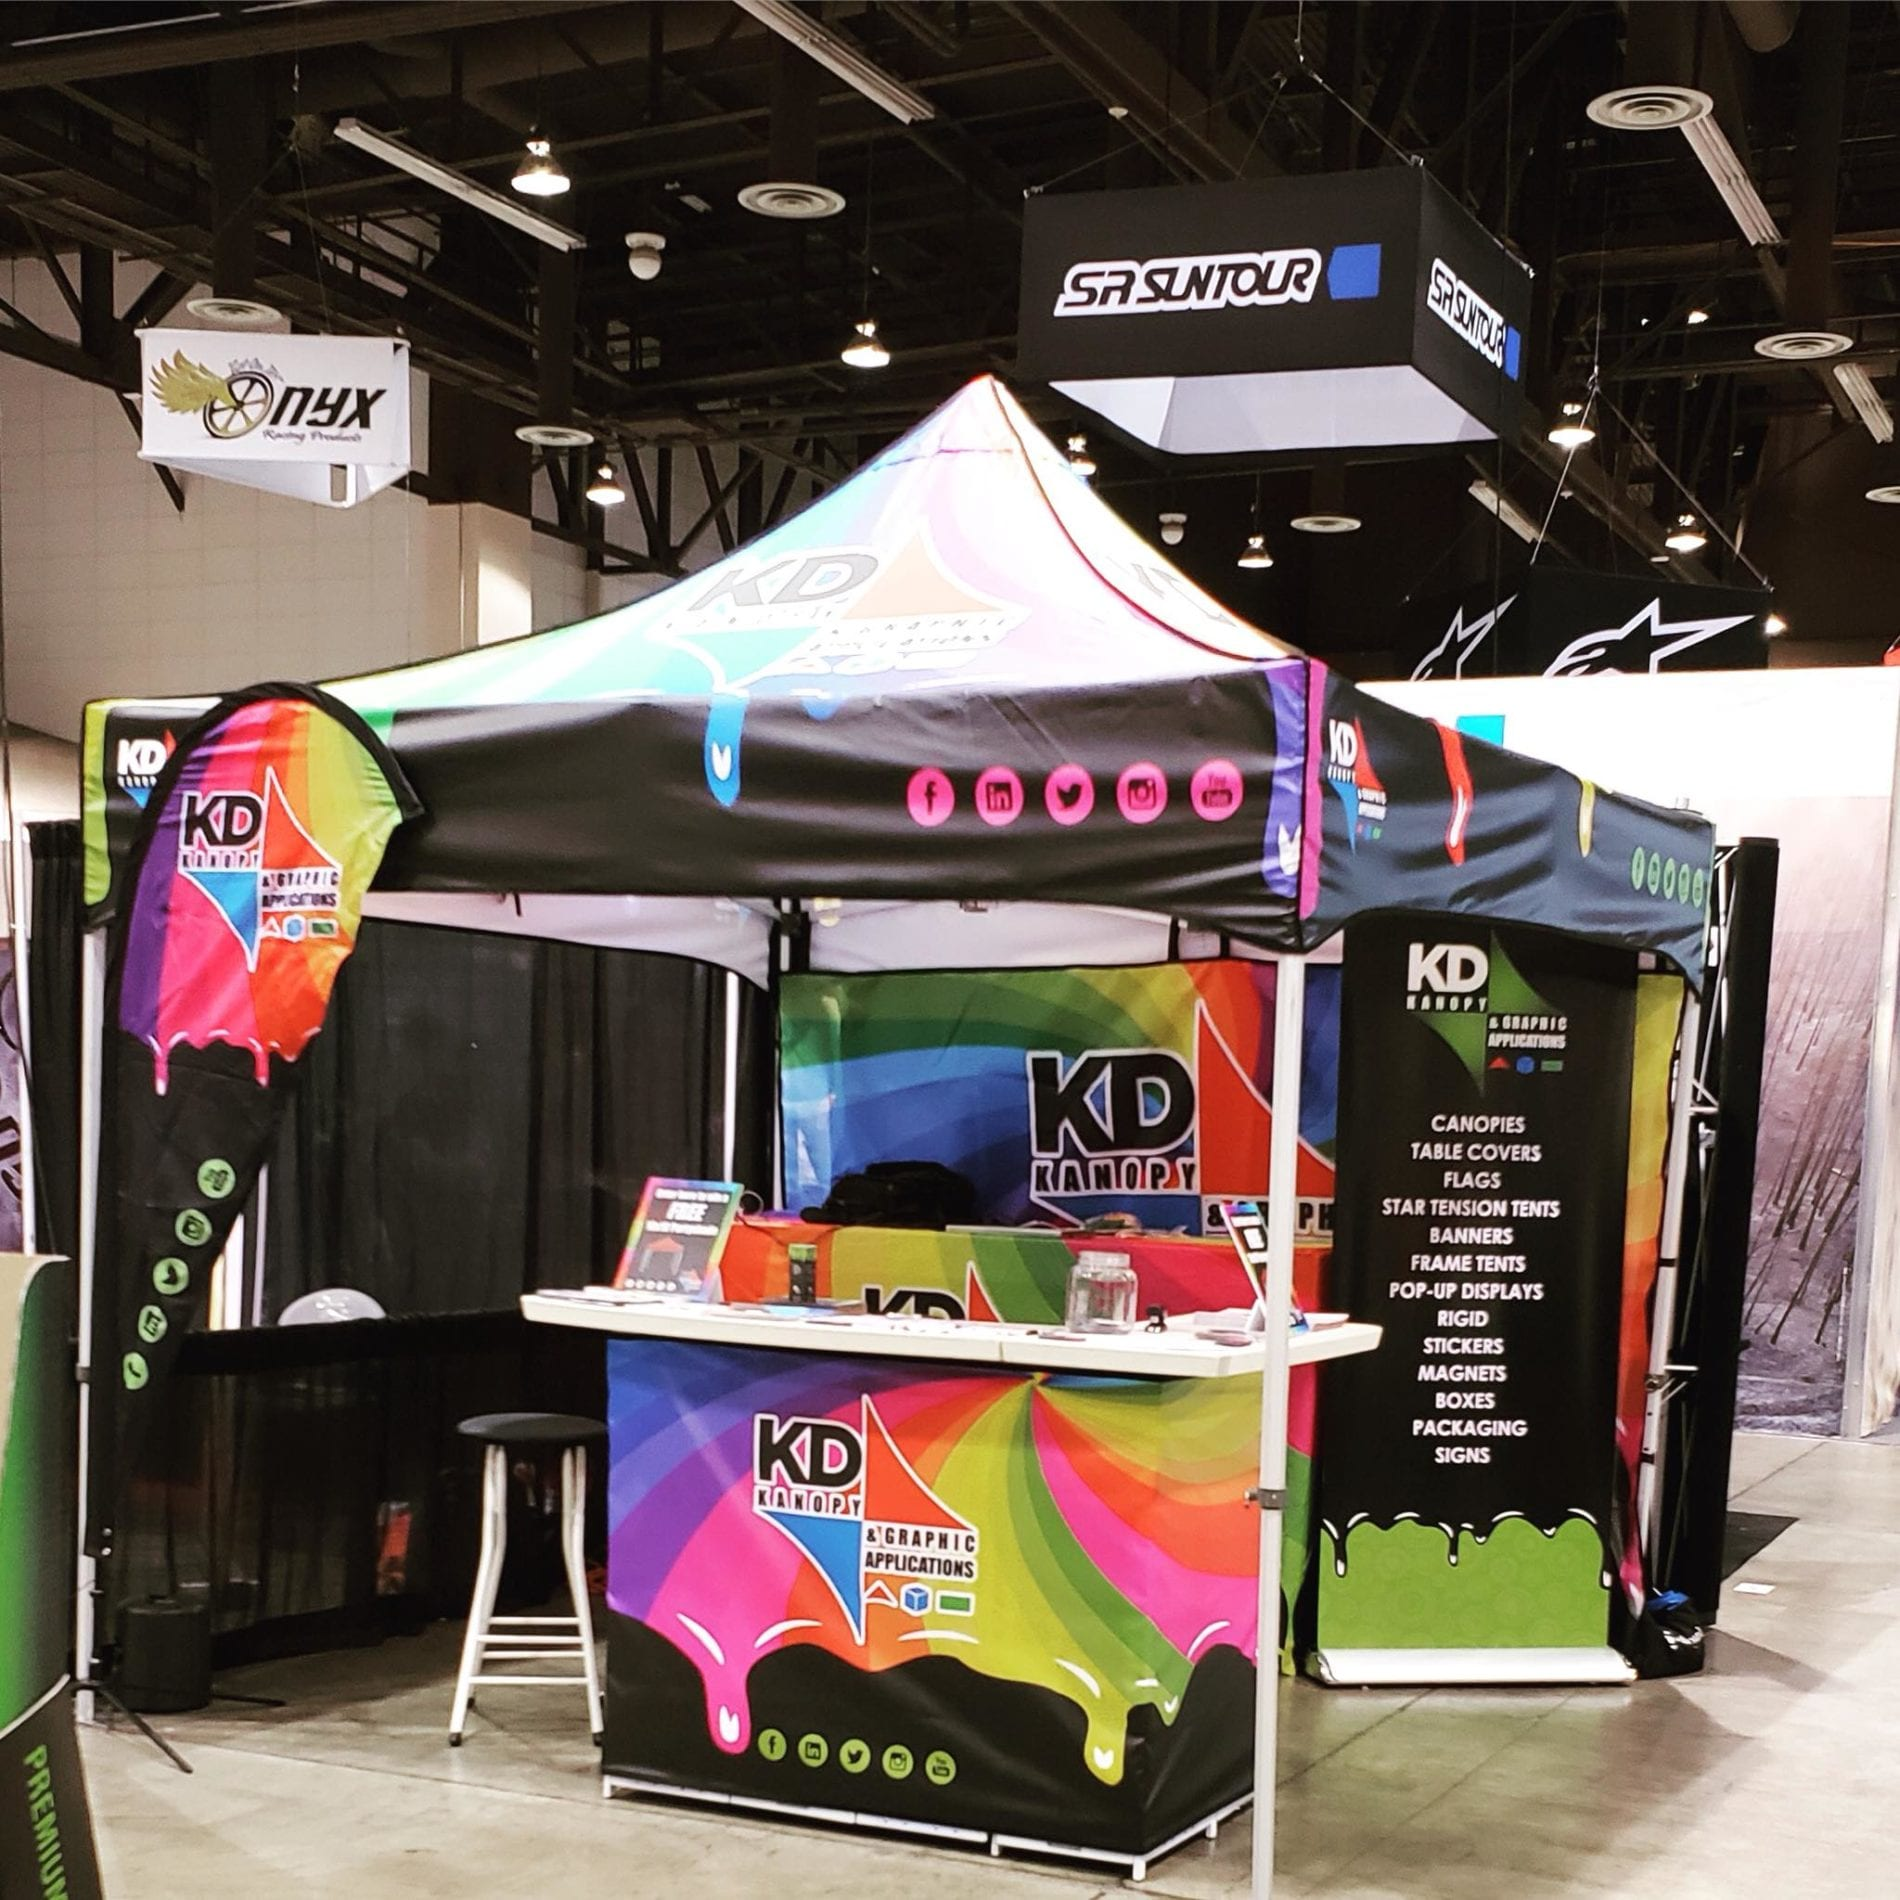 KD Kanopy custom and promotional products